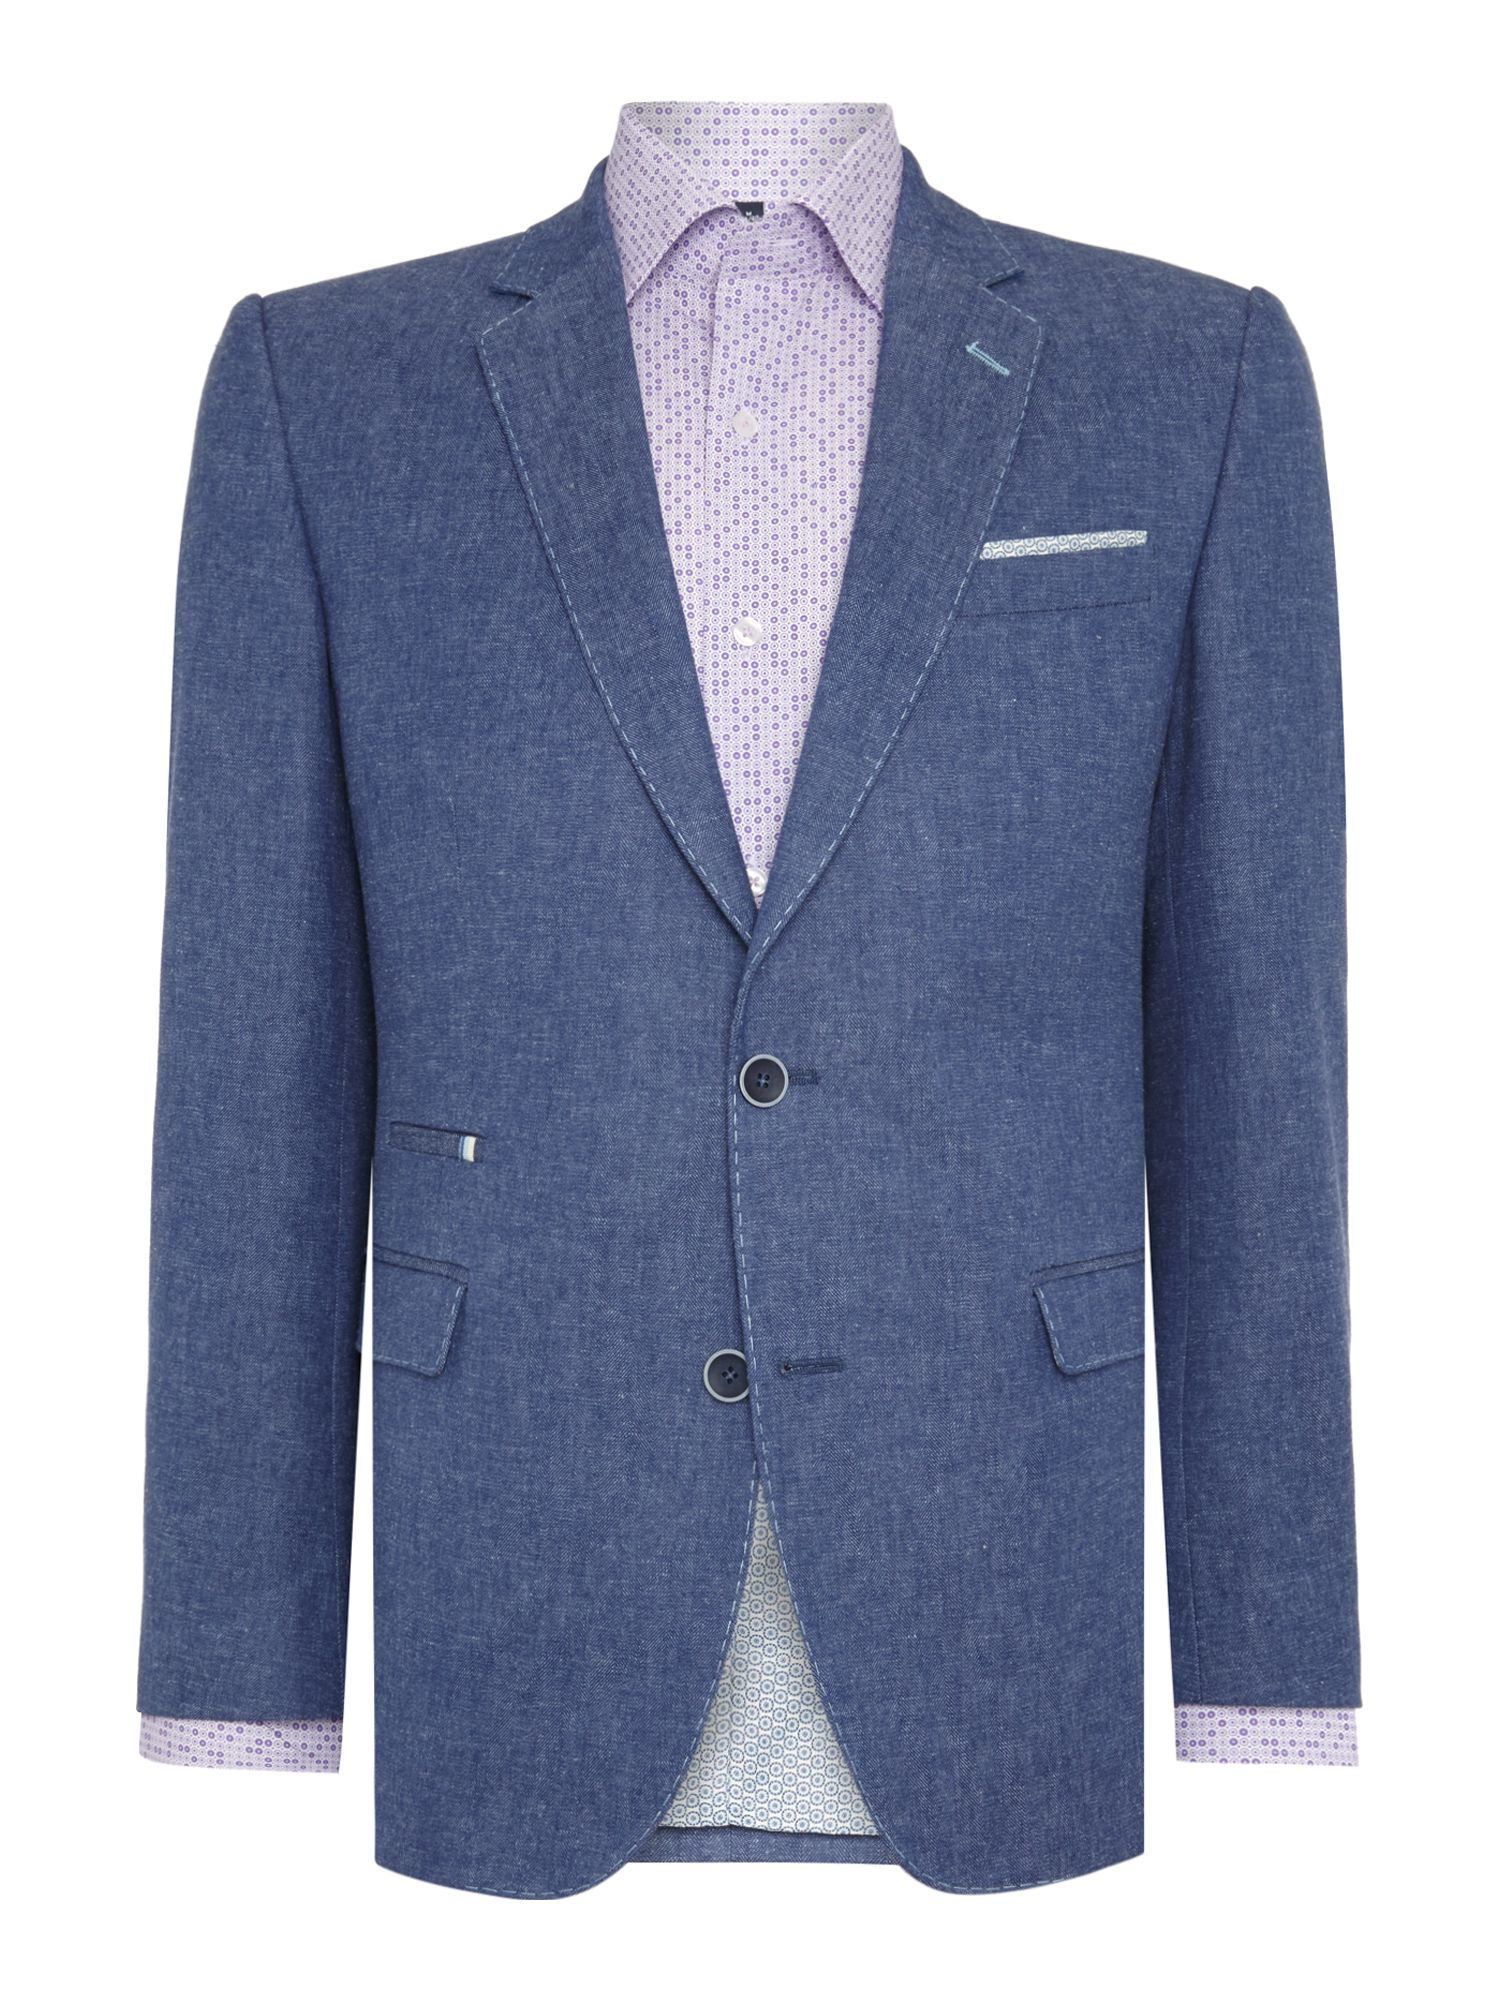 Choosing a jacket in a more versatile and textured colour like blue will help make your tweed more suited to a casual look. With a casual outfit, as there's less pressure to dress up, you're in a better position to experiment with layering and colours.